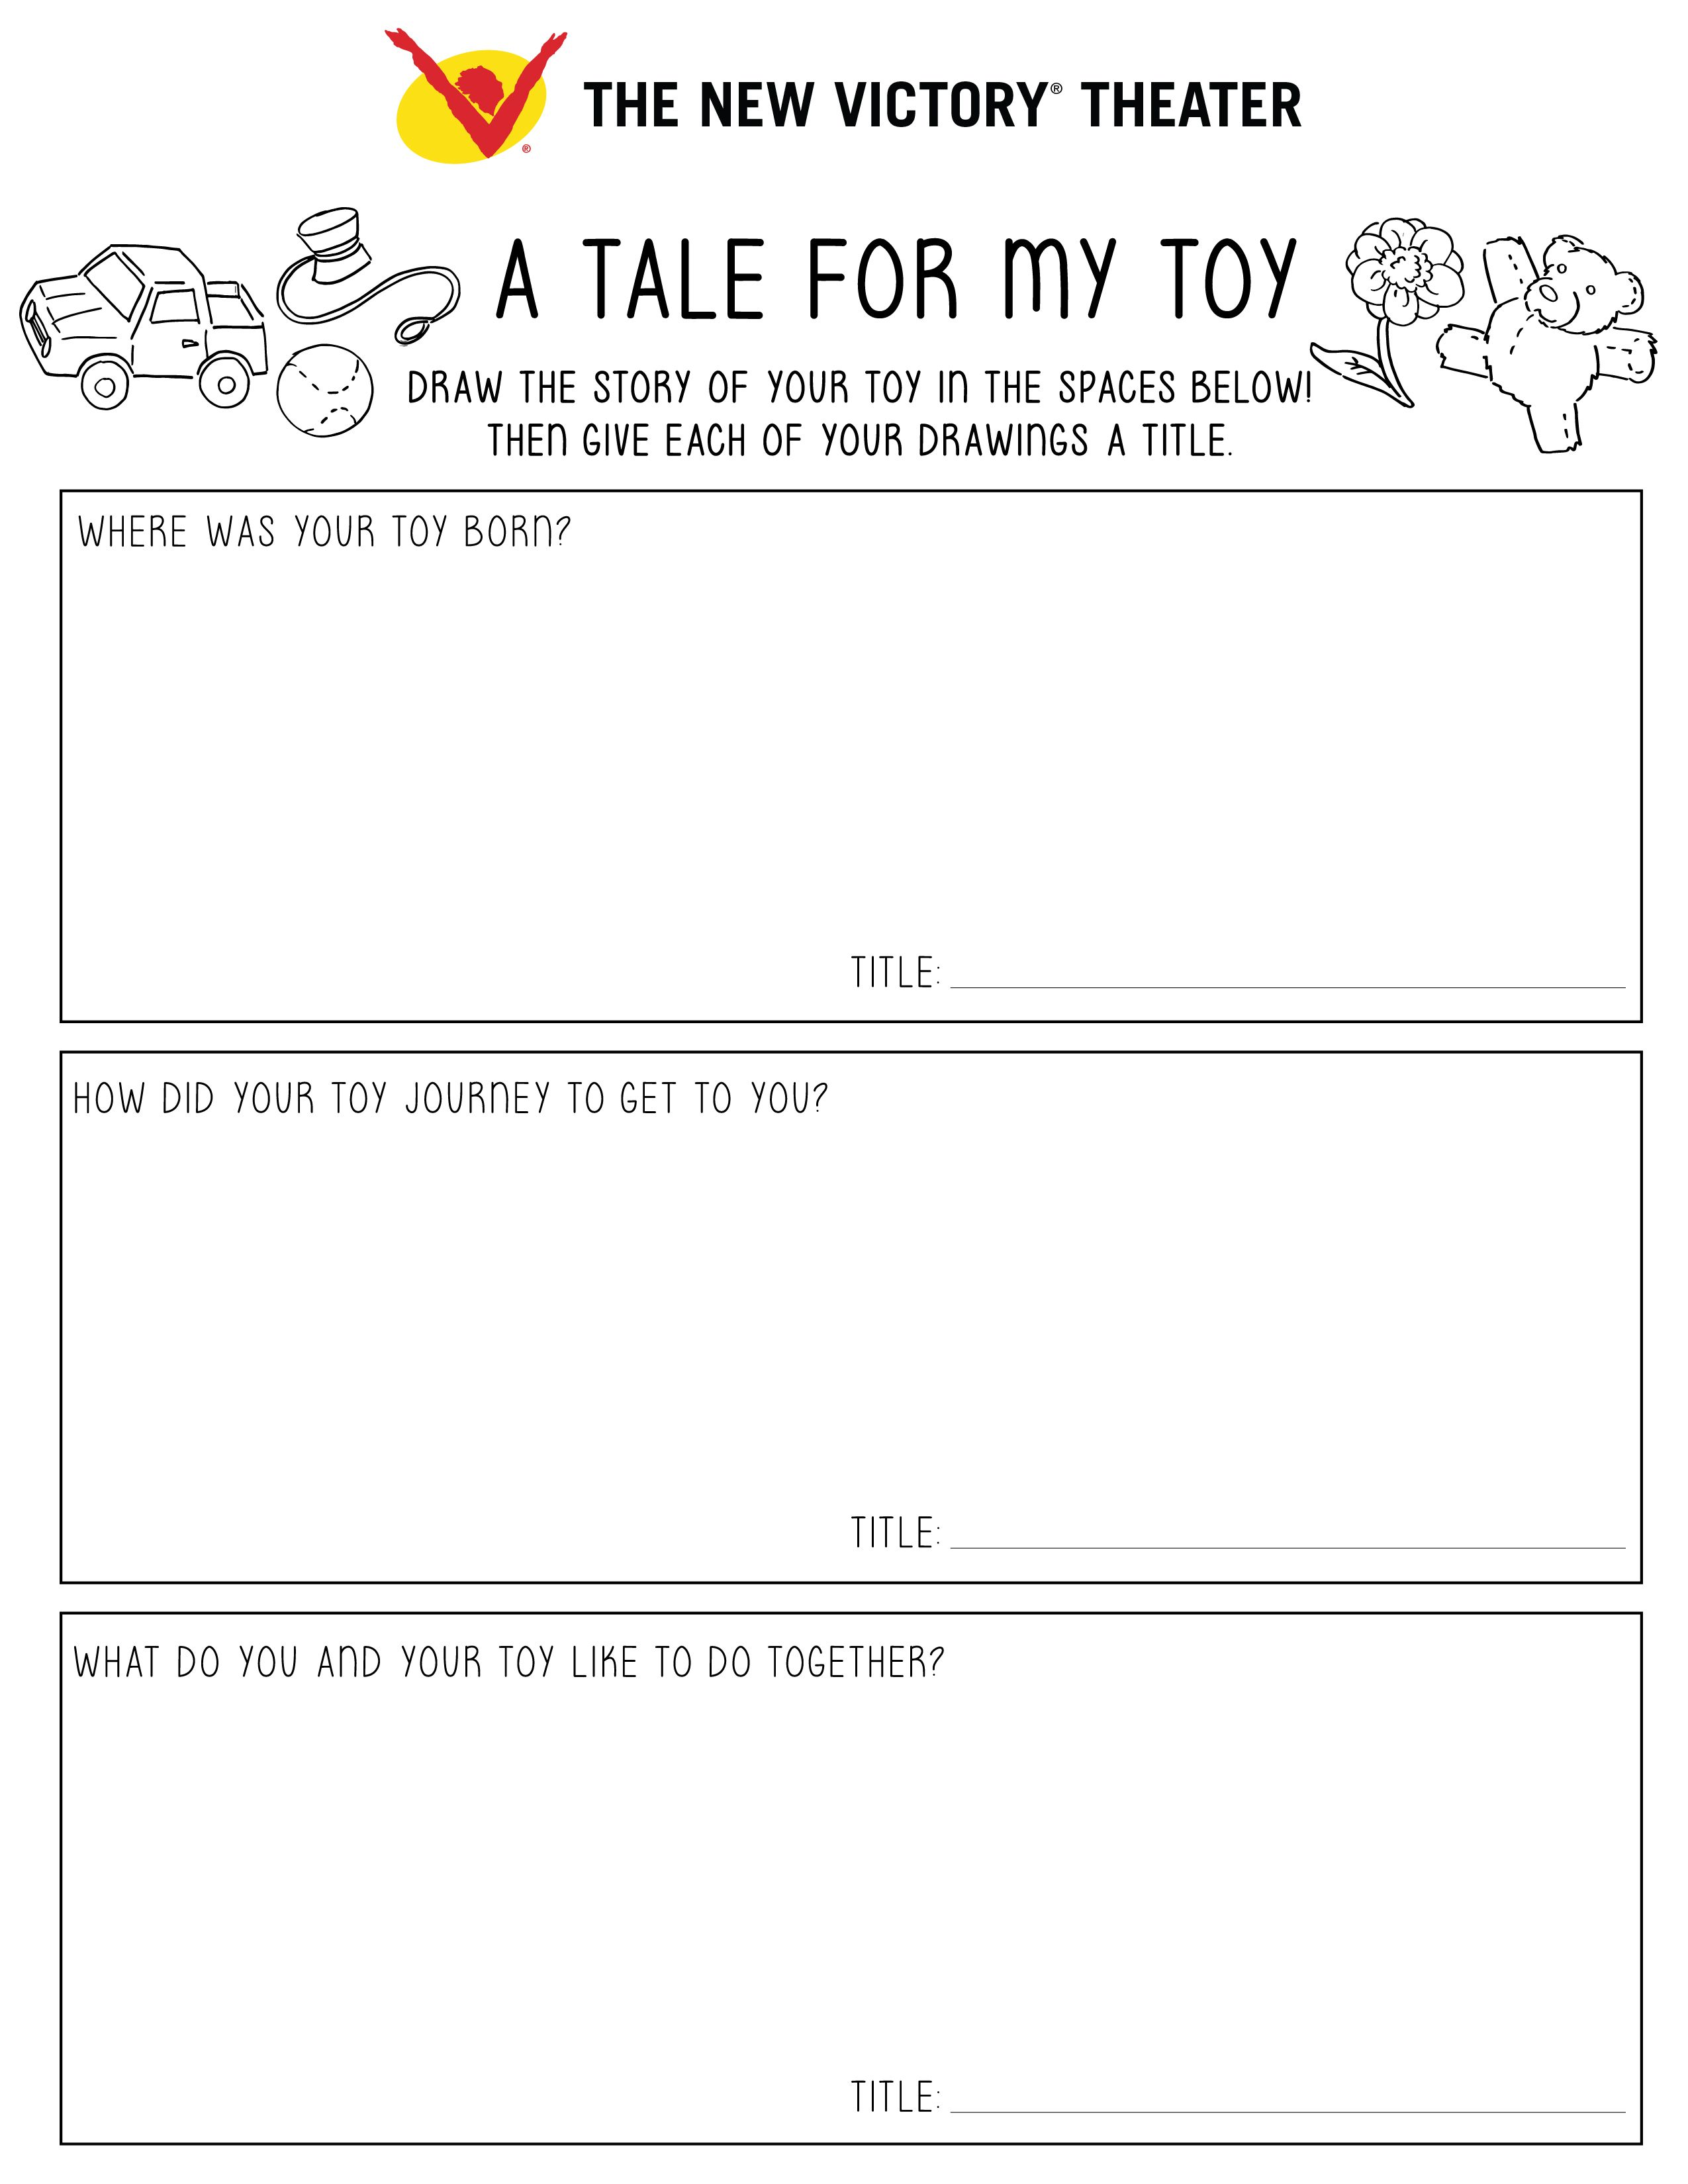 Guide Your Kids Through Telling The Tales Of Their Toys